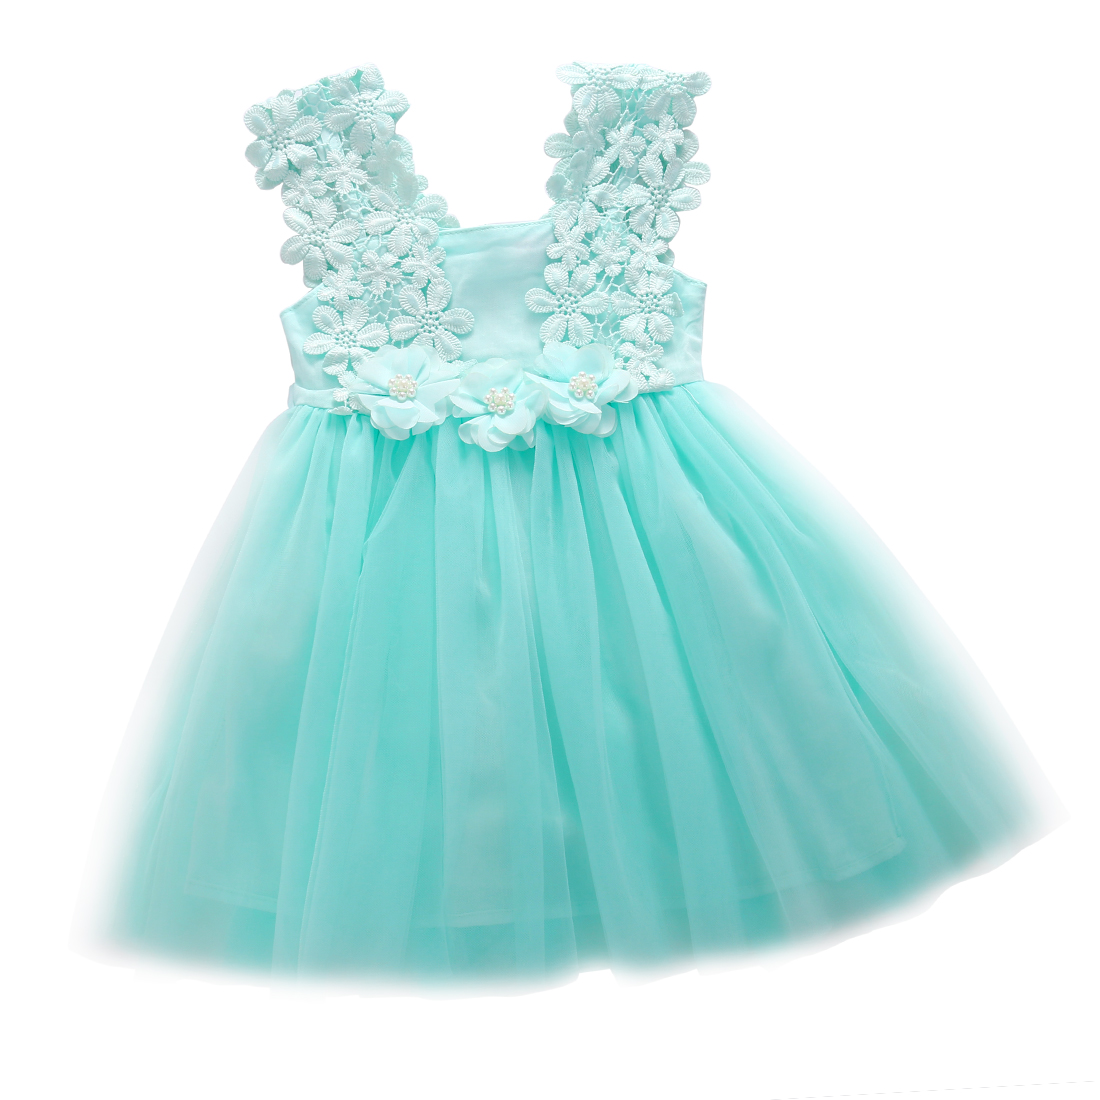 Infant Toddler Baby Lovely flower girl dress Princess Lace Tulle Tutu Backless Gown Formal Party Dress 2017 lovely toddler girl dress princess stripe tutu baptism child clothes 1 year birthday baby girls dresses for infant 2 year